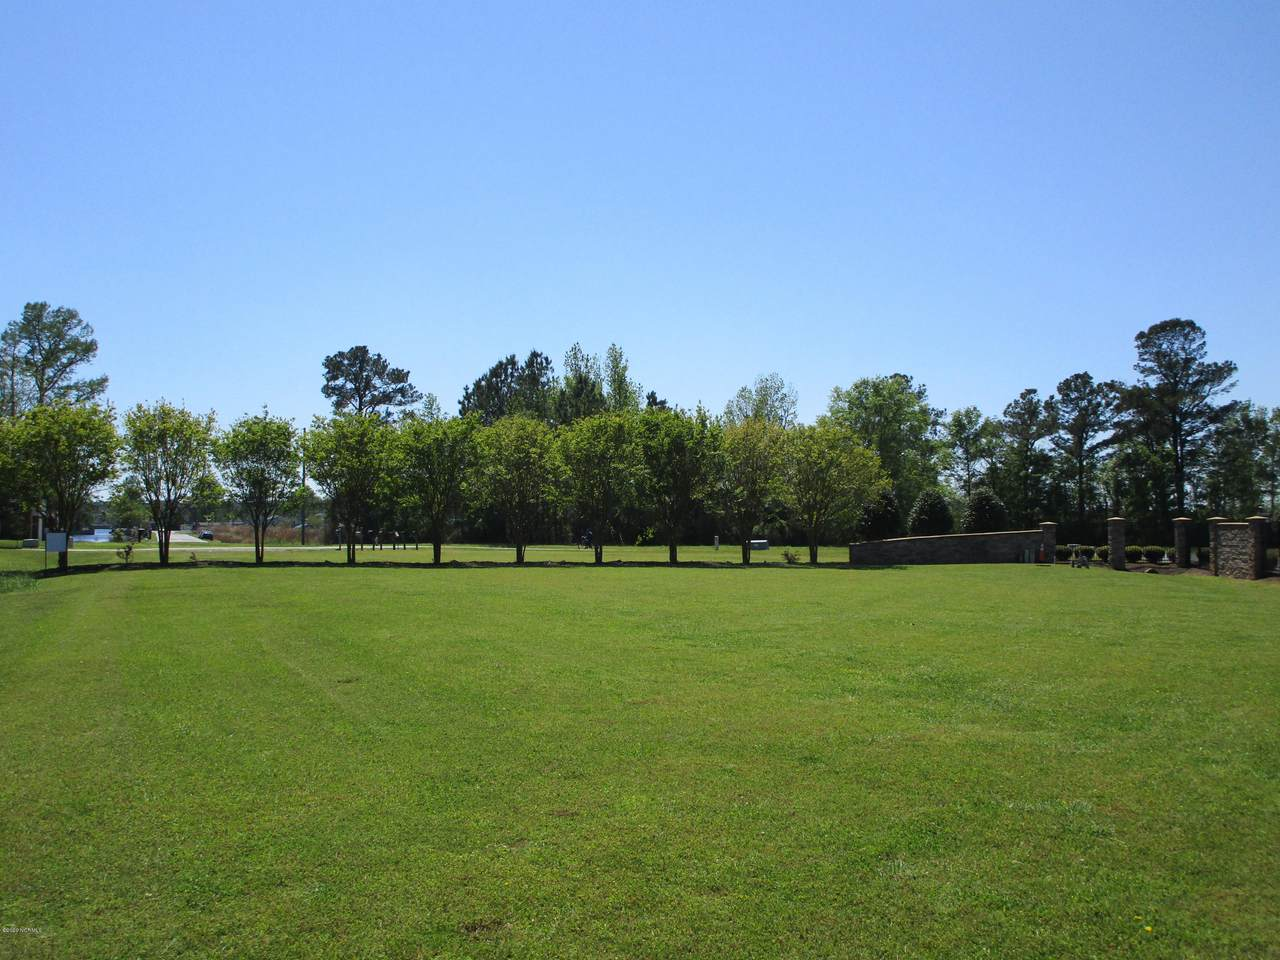 Lot 38 Whichard Lane - Photo 1